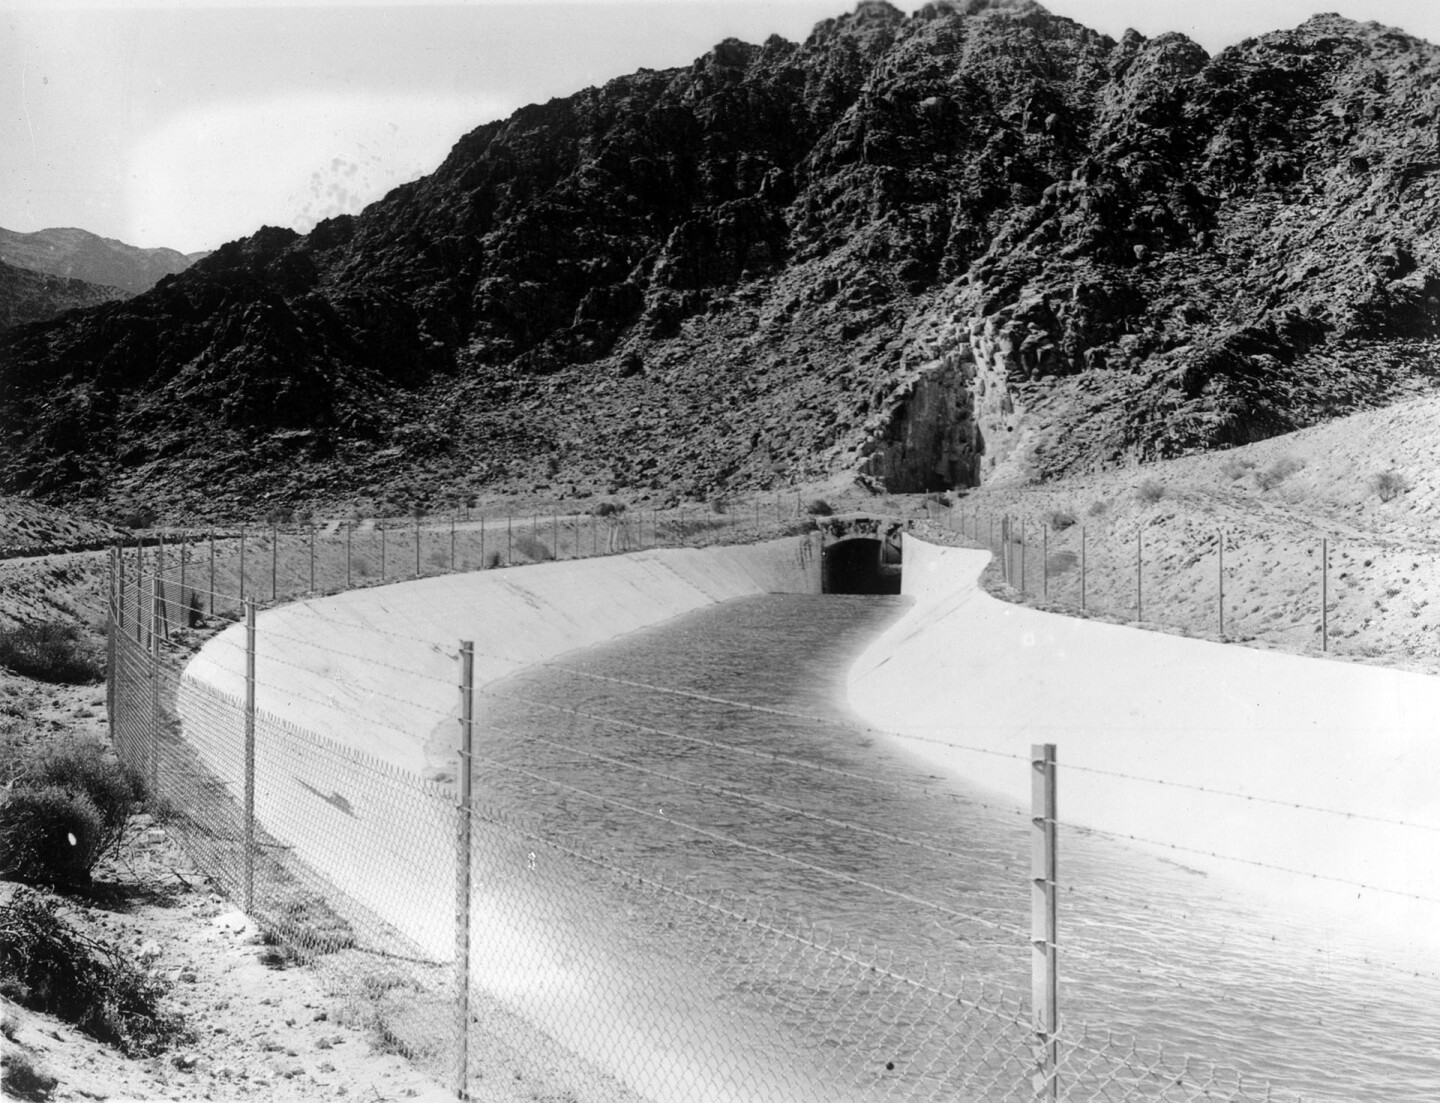 View of a tunnel on the Colorado River Aqueduct, October 16, 1942